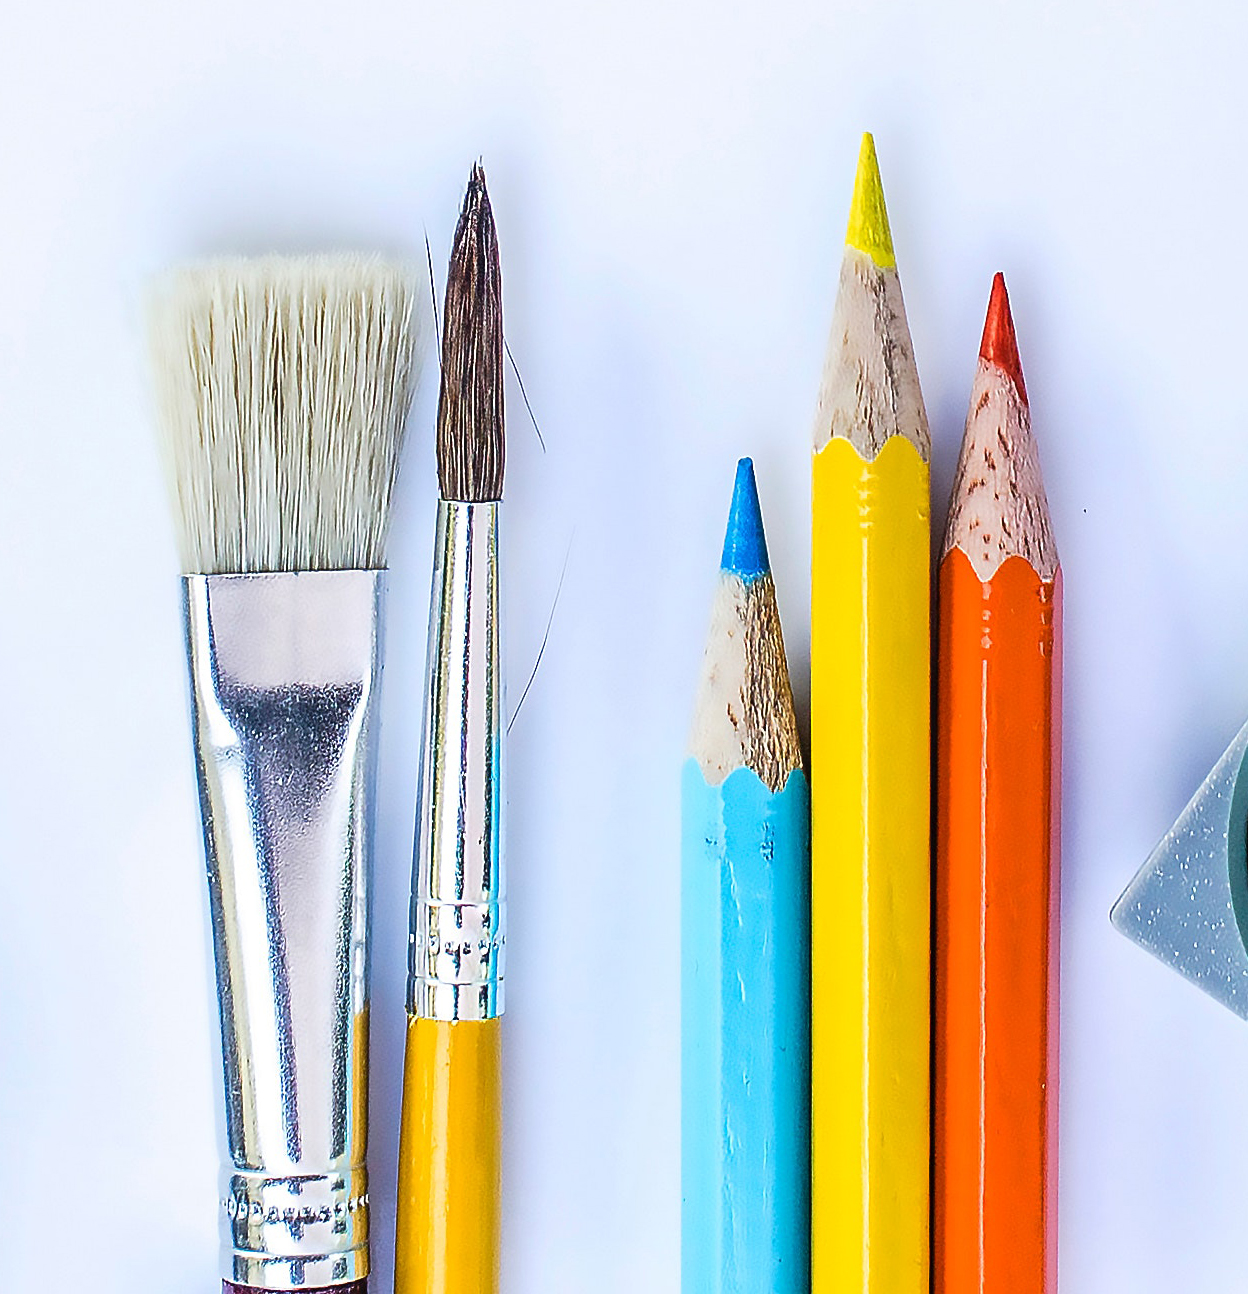 Photo of paintbrushes and pencil crayons